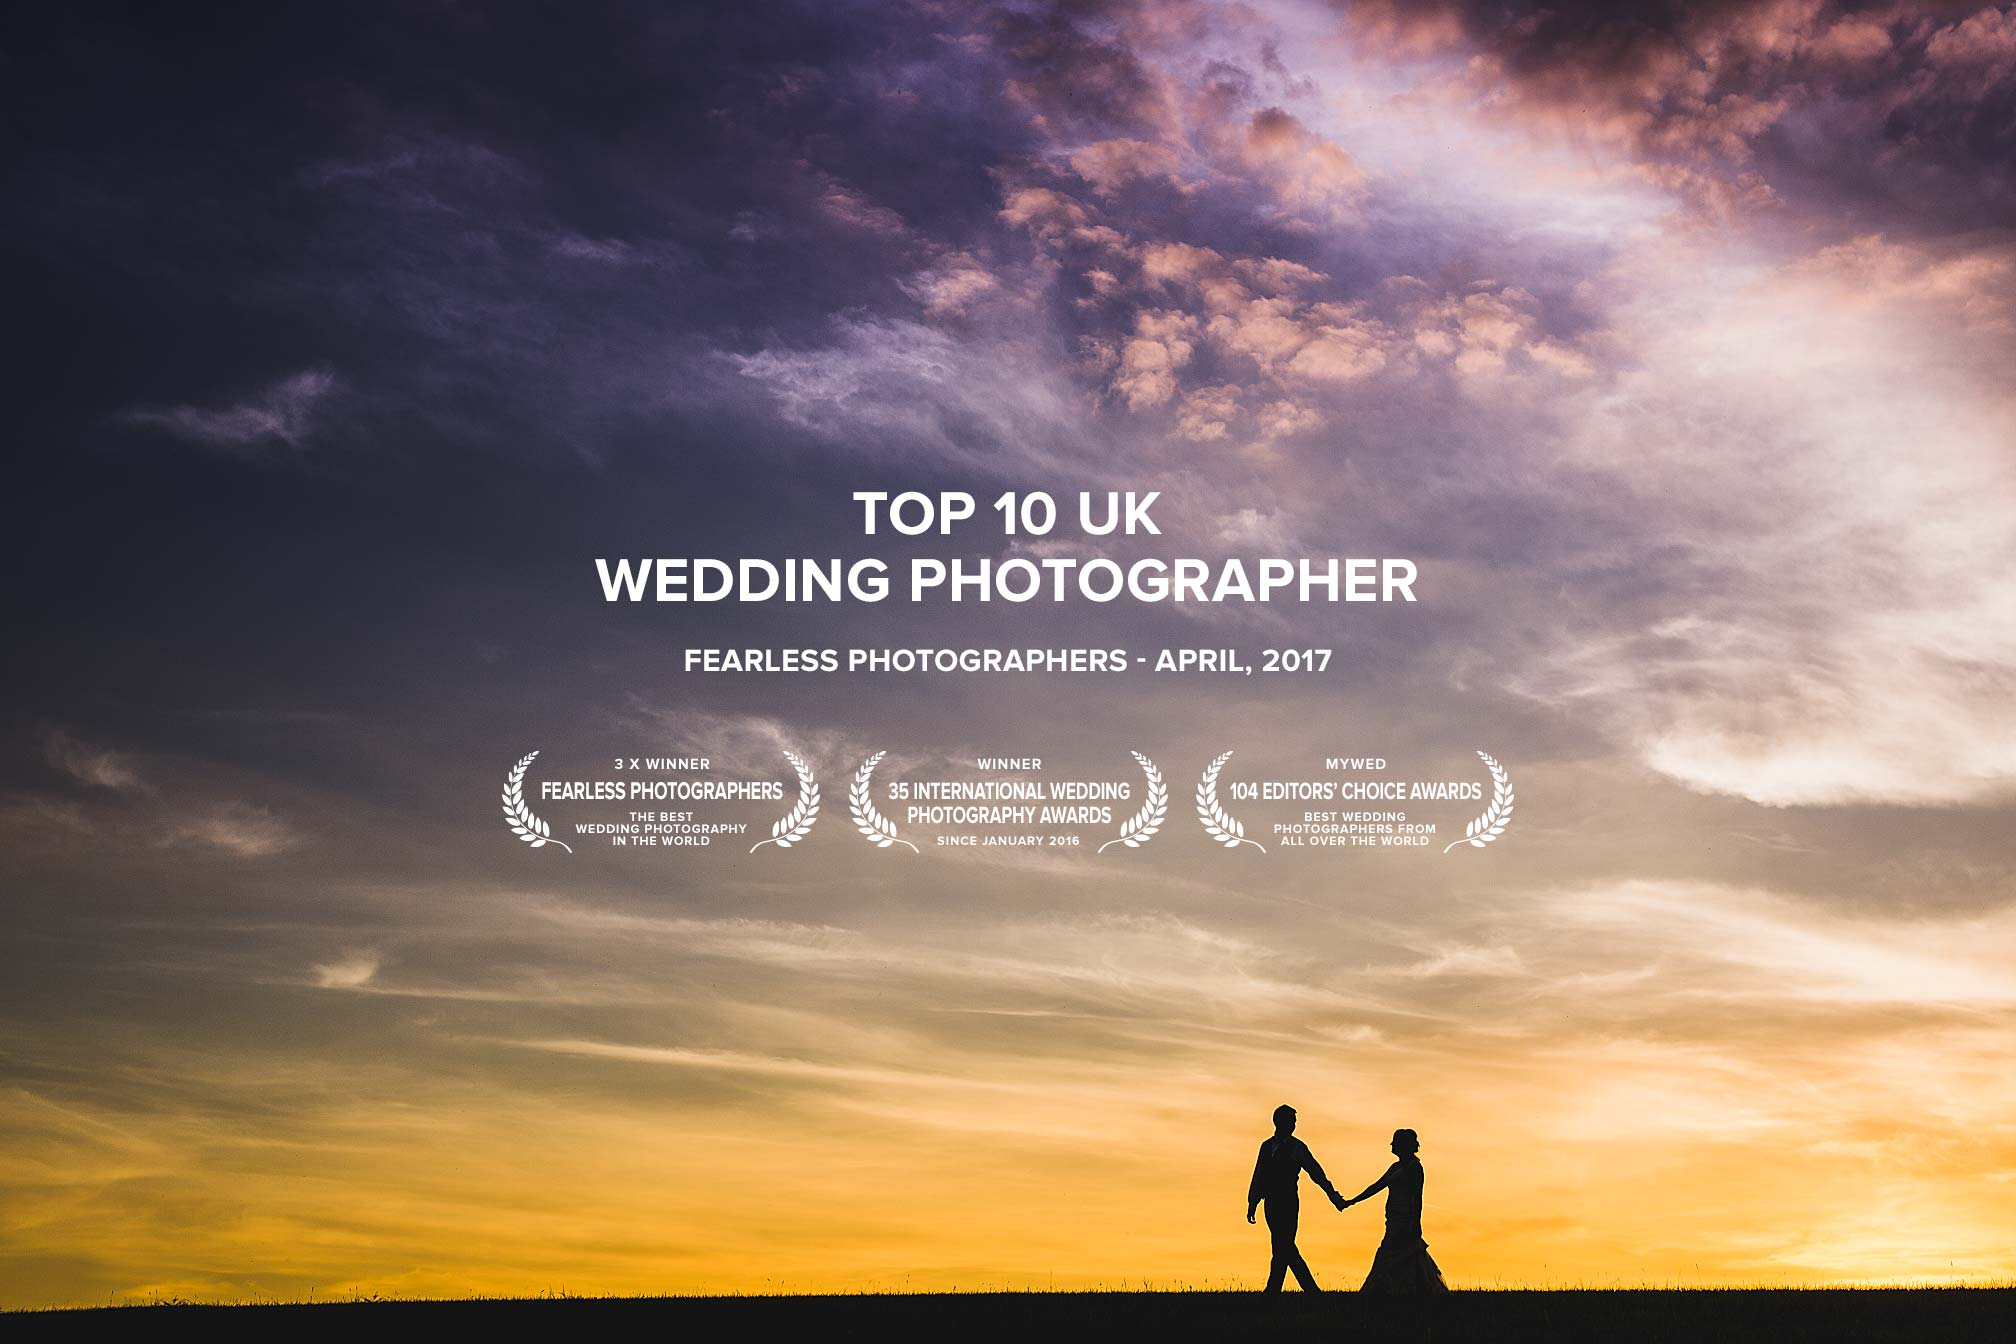 Fearless Photographers - Award Winning Wedding Photographer